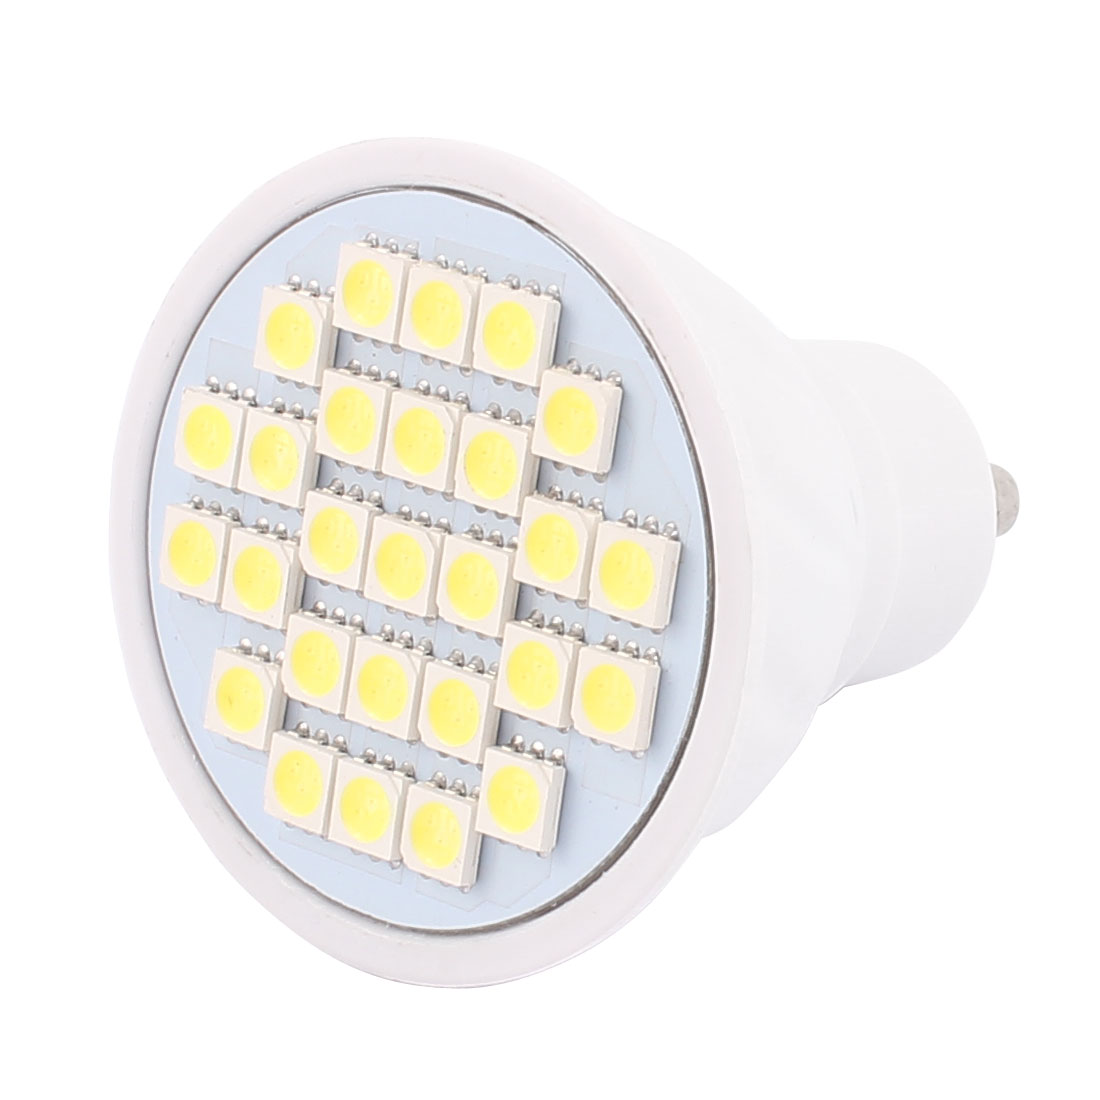 220V GU10 LED Light 4W 5050 SMD 27 LEDs Spotlight Down Lamp Bulb Energy Save Pure White